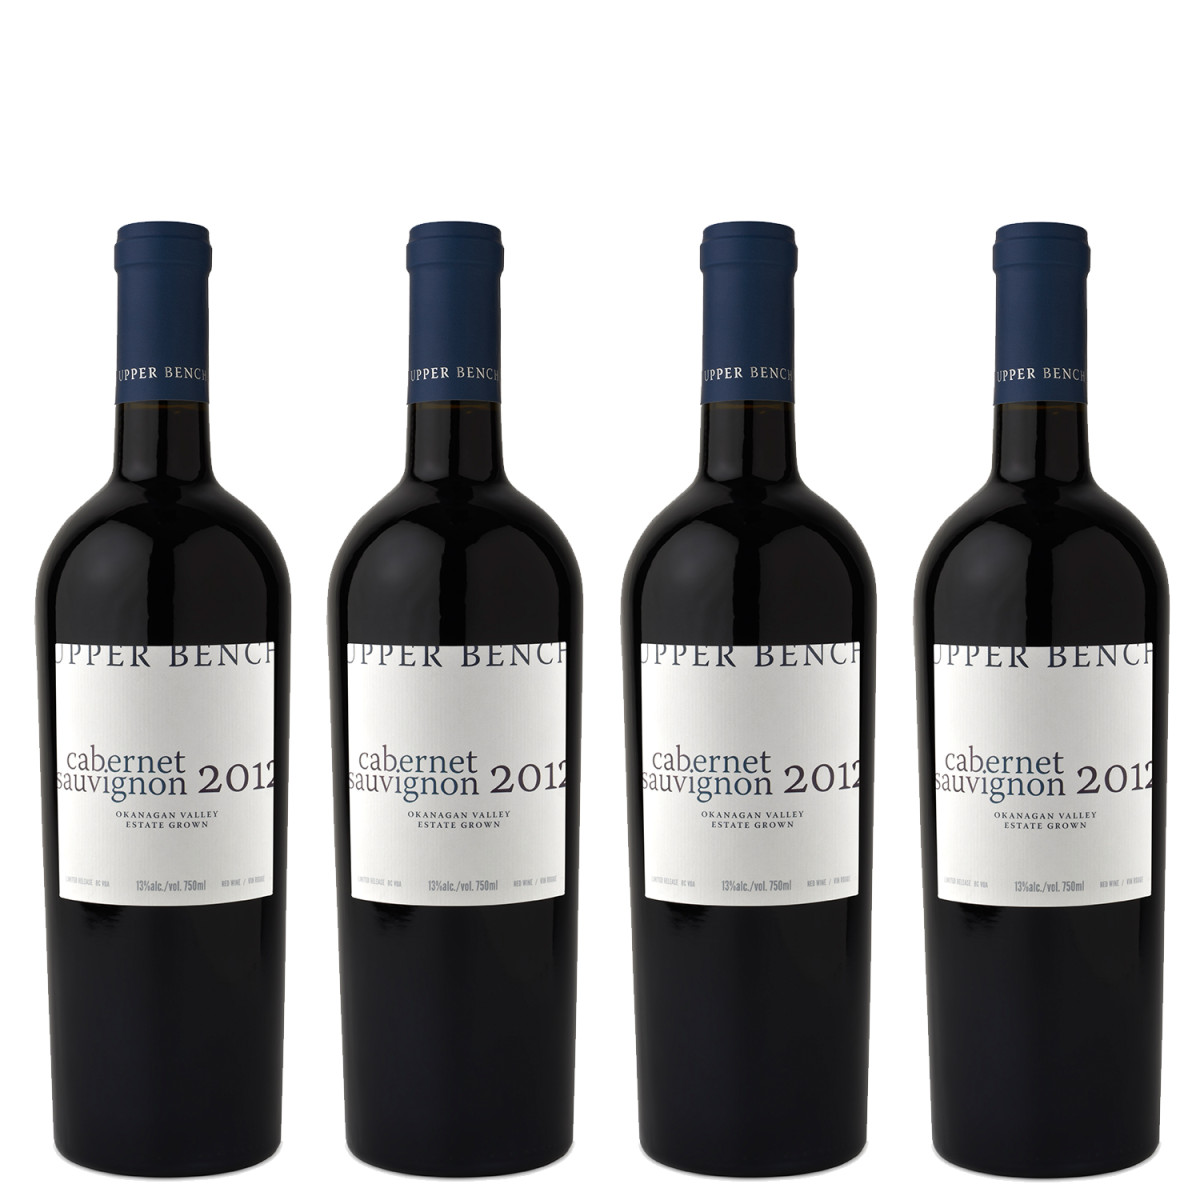 Upper Bench Estate Cabernet Sauvignon